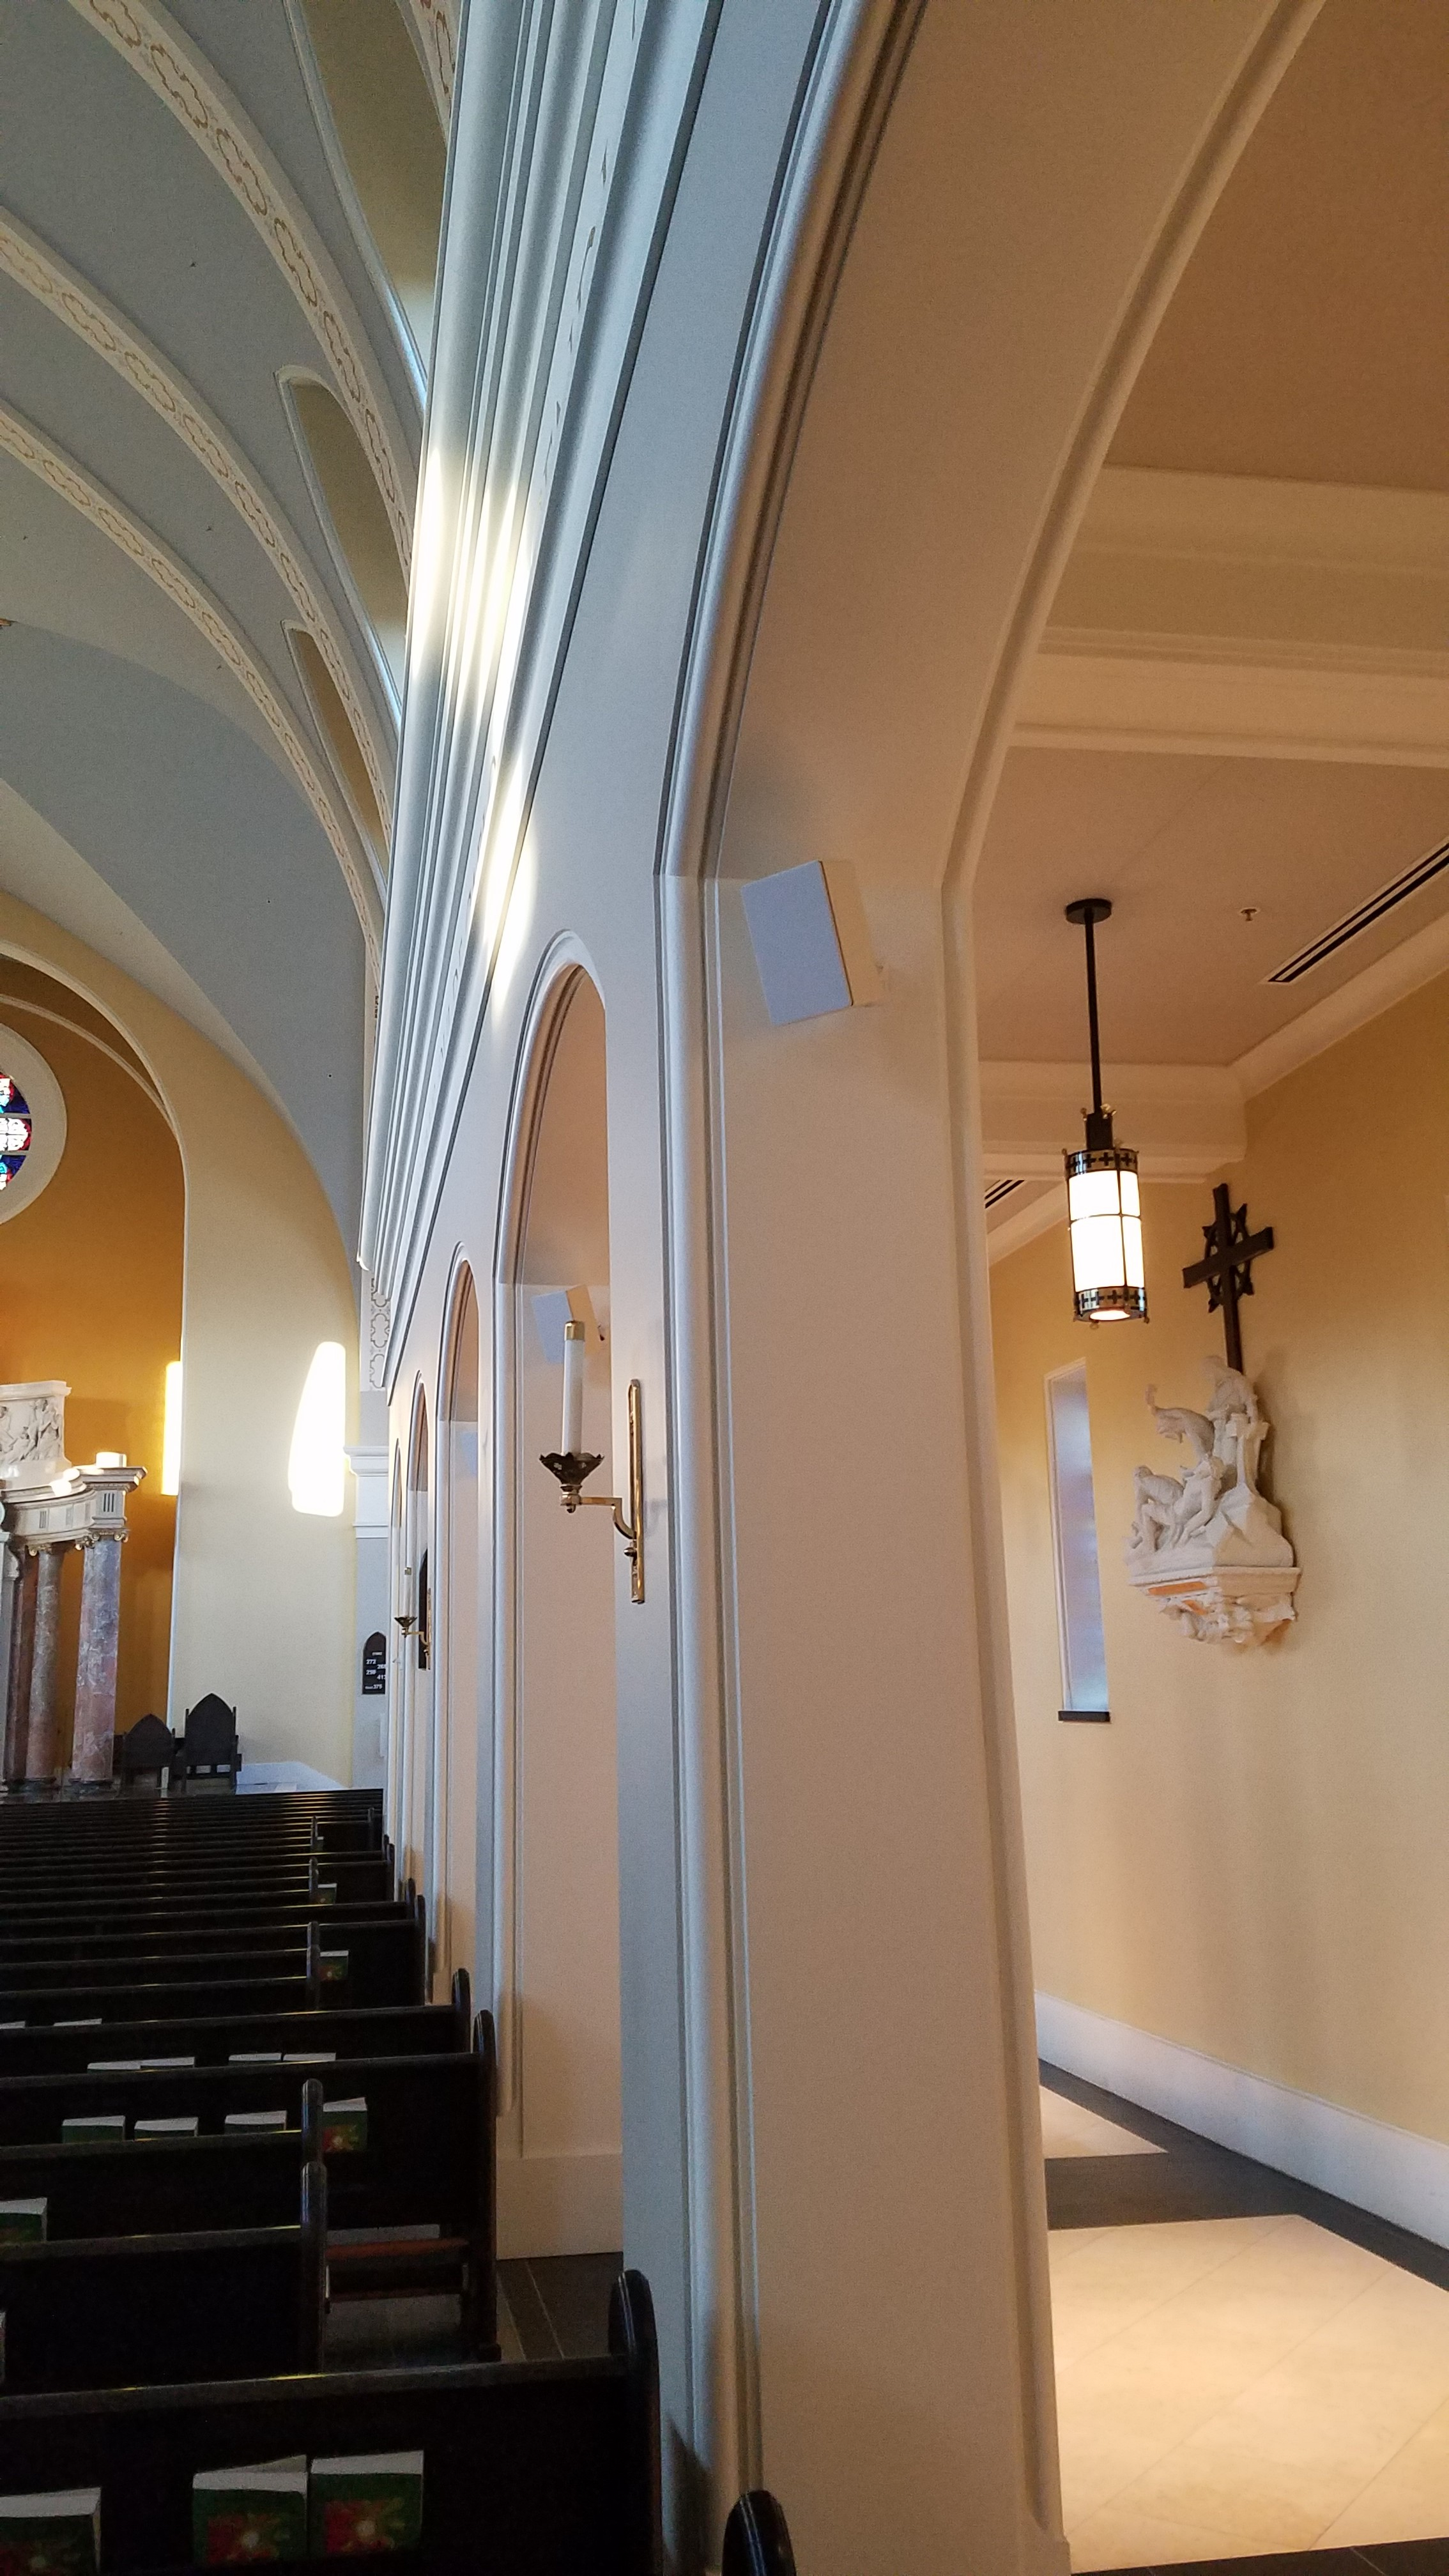 CAMM DT-200 speakers are used to provide audio in the nave.